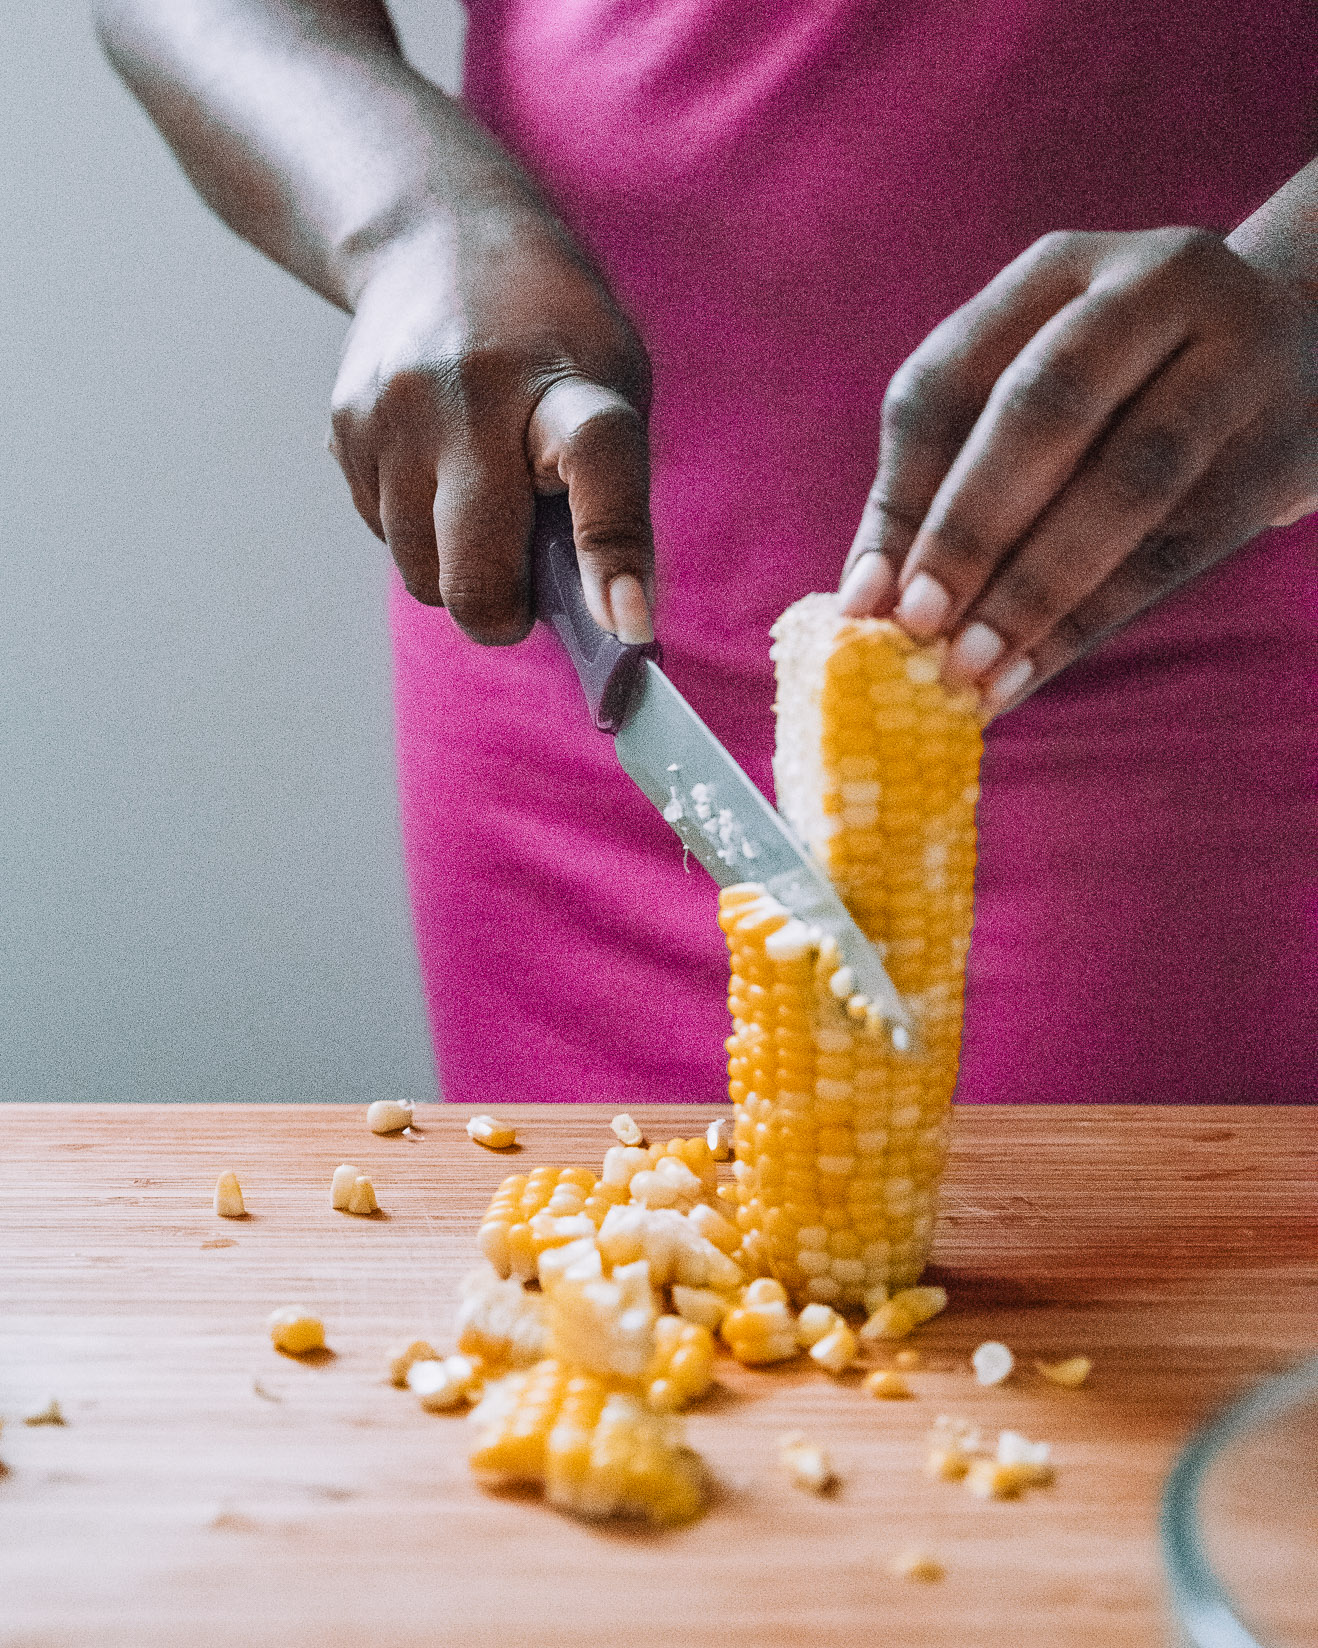 10 Ingredient Sweet Corn Recipe by Mash and Spread - Jasmin Foster, RD, LD